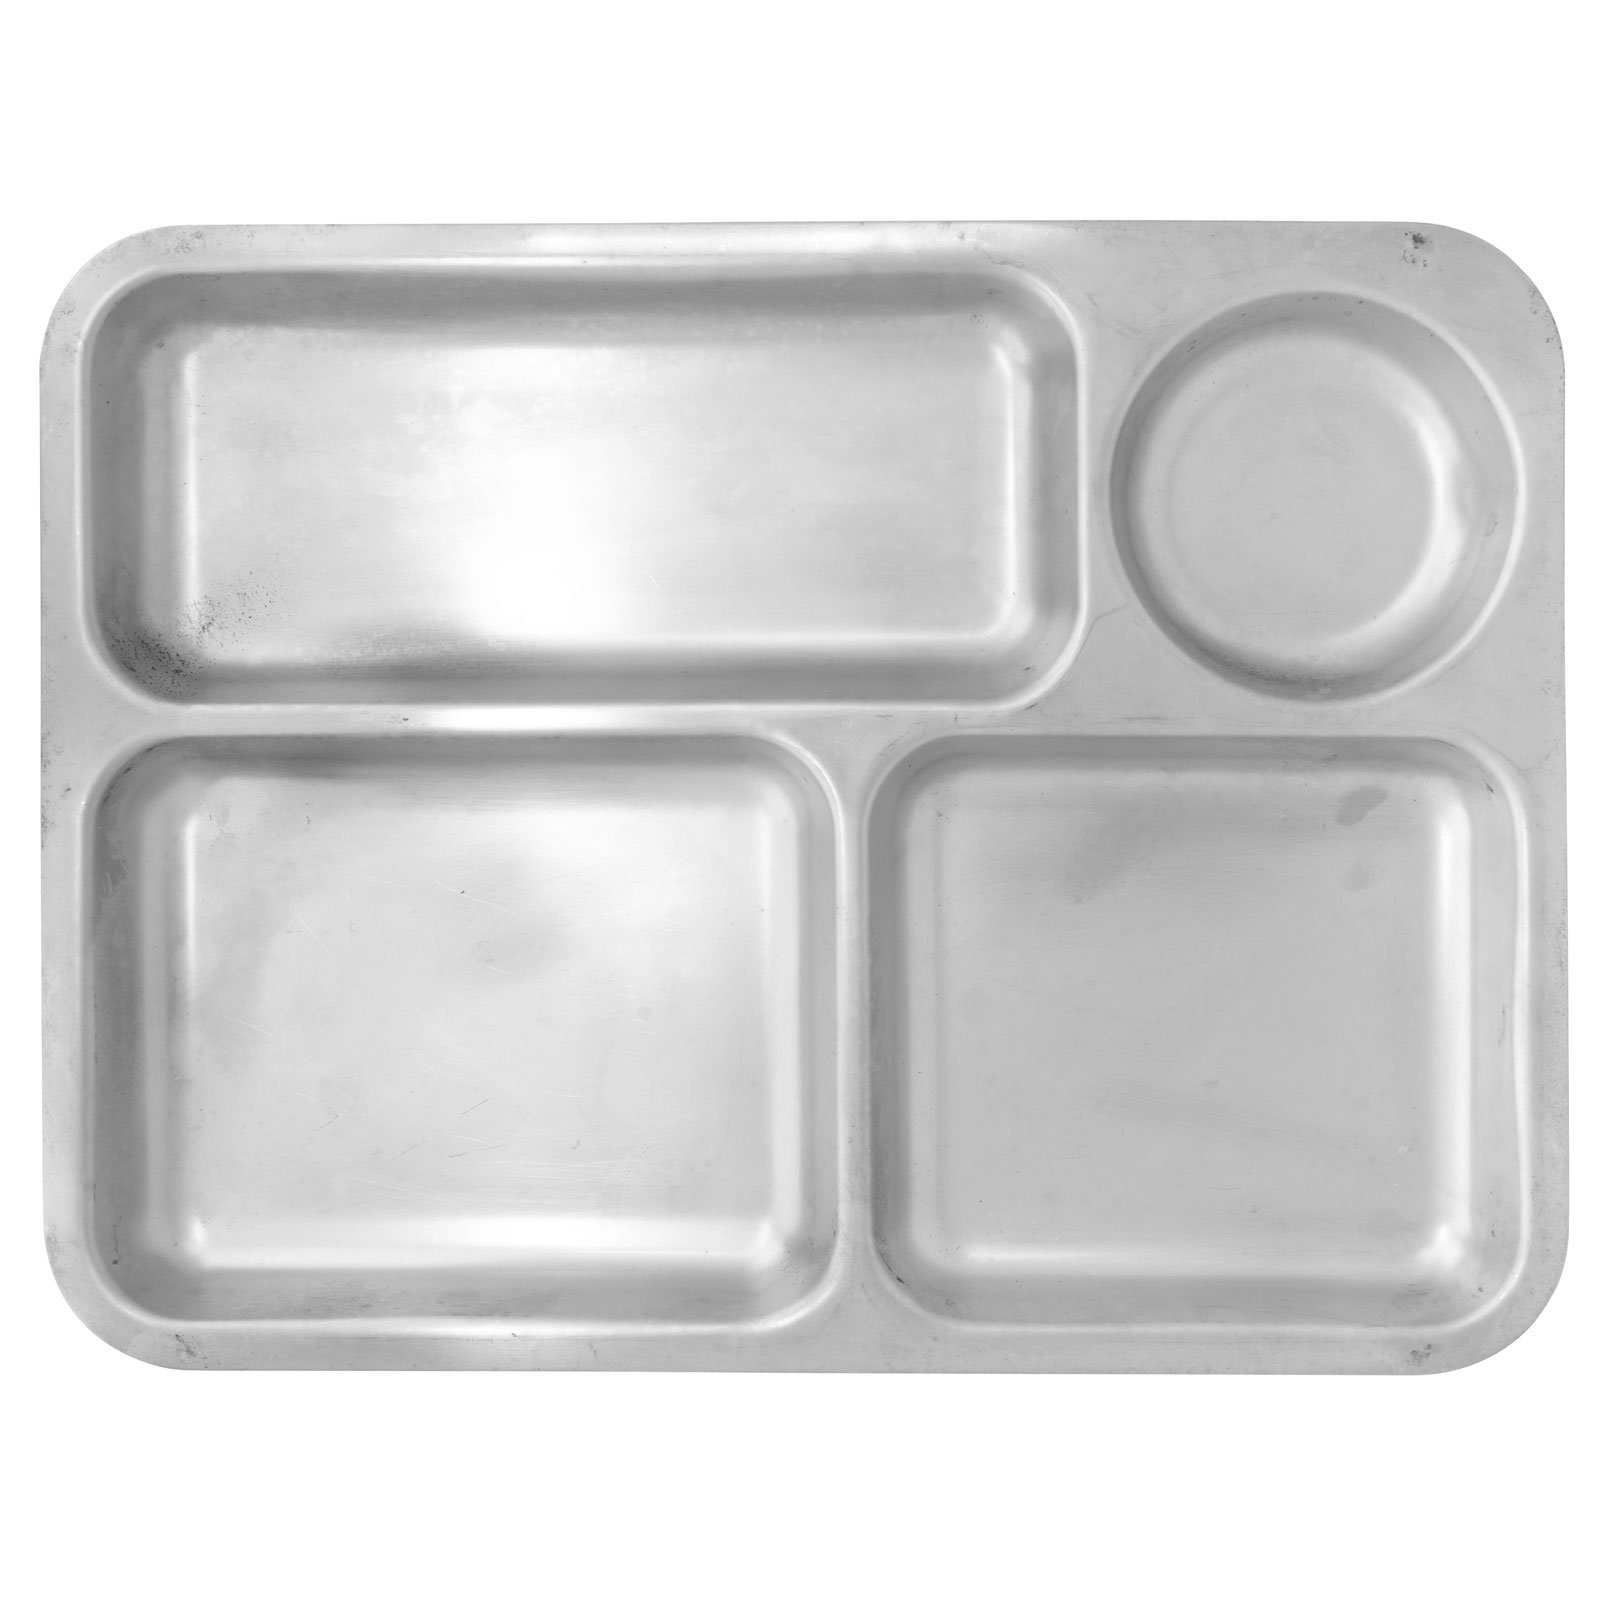 SwissLink Italian Air Force Stainless Cafeteria Tray - Used/New